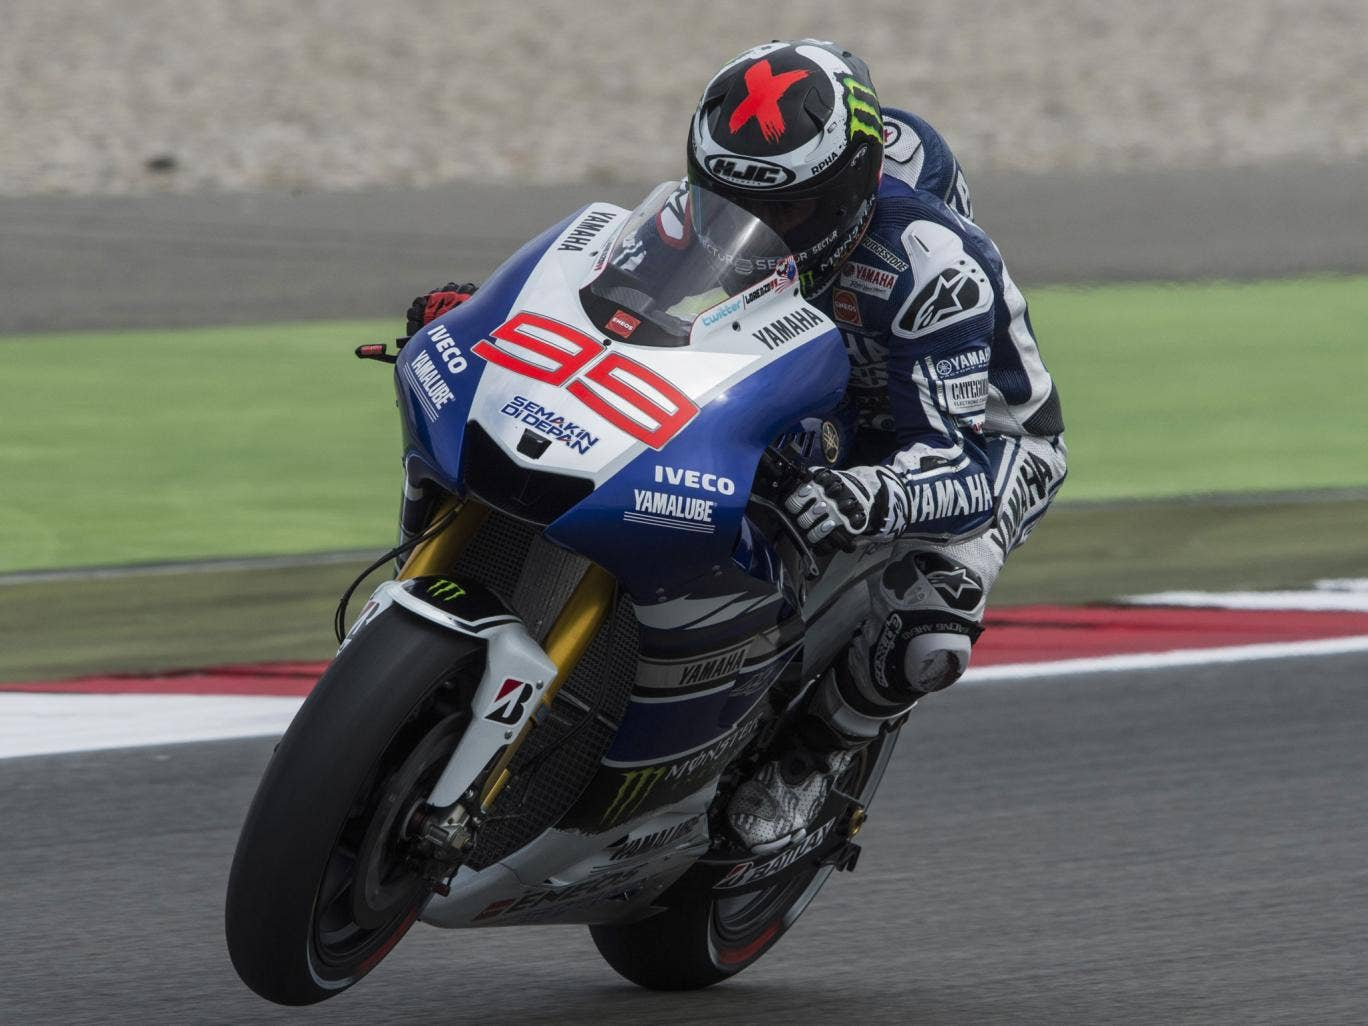 Jorge Lorenzo will miss the Dutch Grand Prix after breaking his left collarbone